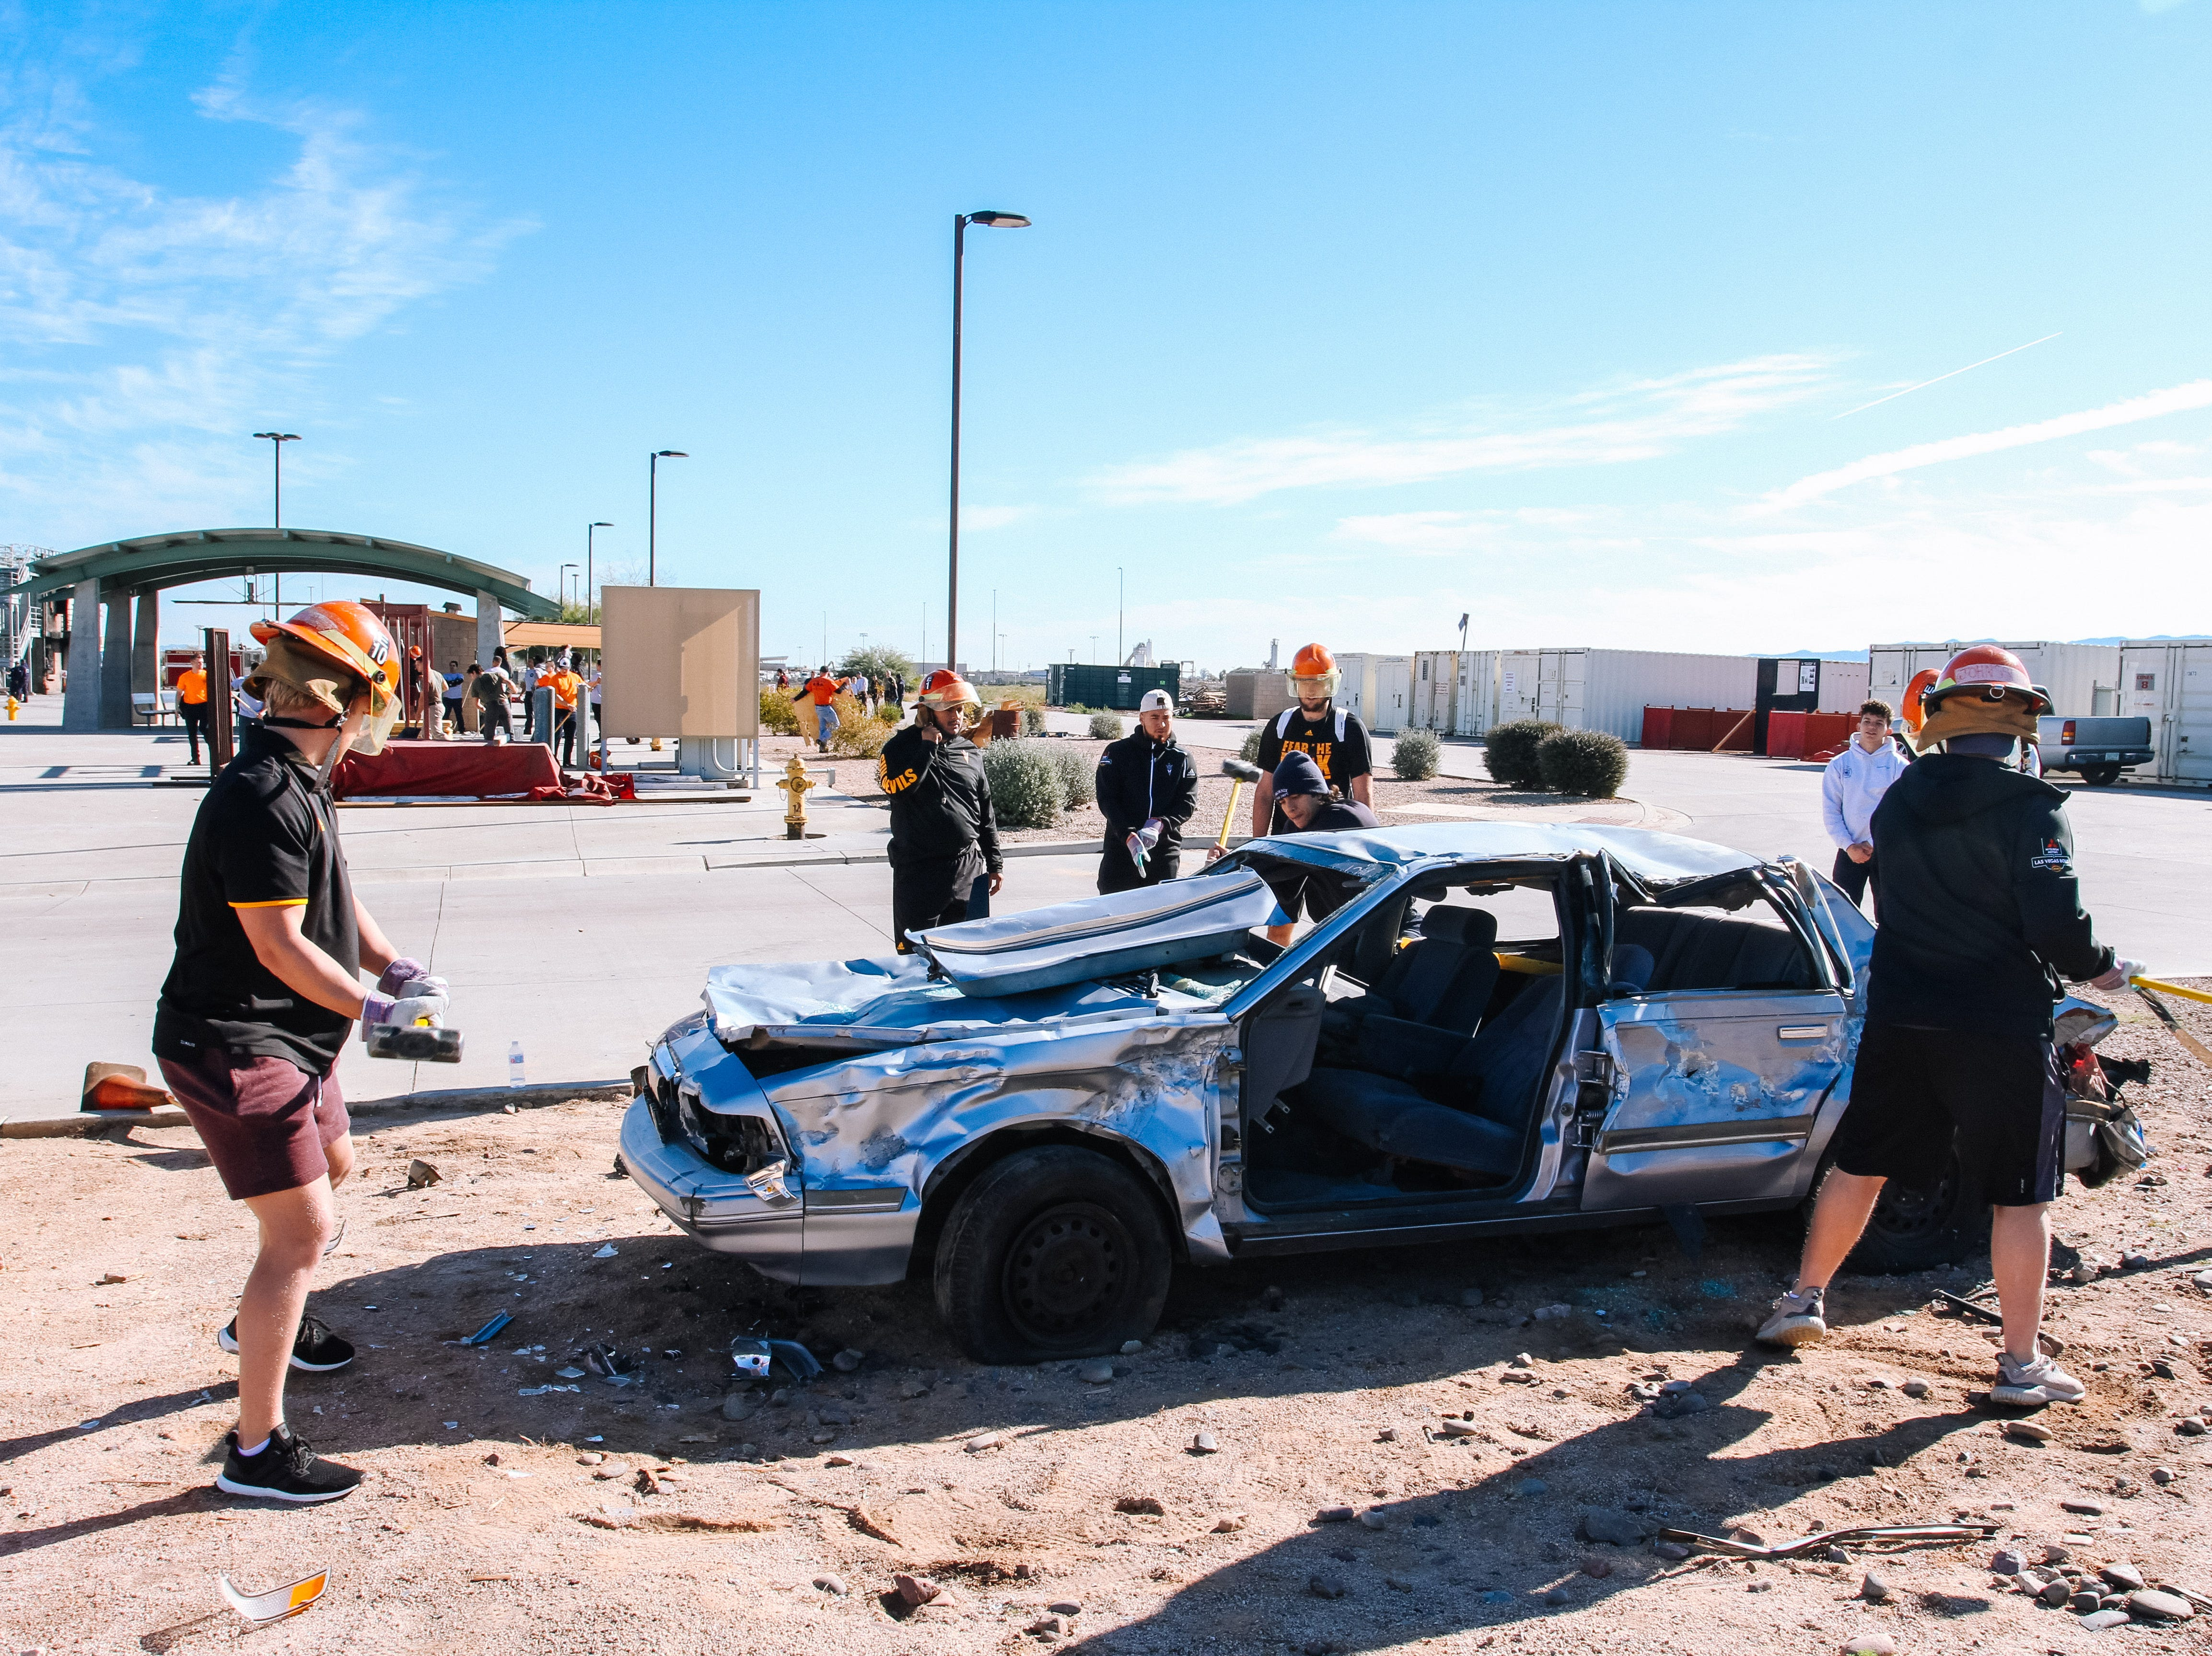 The Arizona State University football team spends a day with the Phoenix Fire Department at their training facility during a recruiting day in Phoenix, Arizona on Saturday, Jan. 12, 2019.